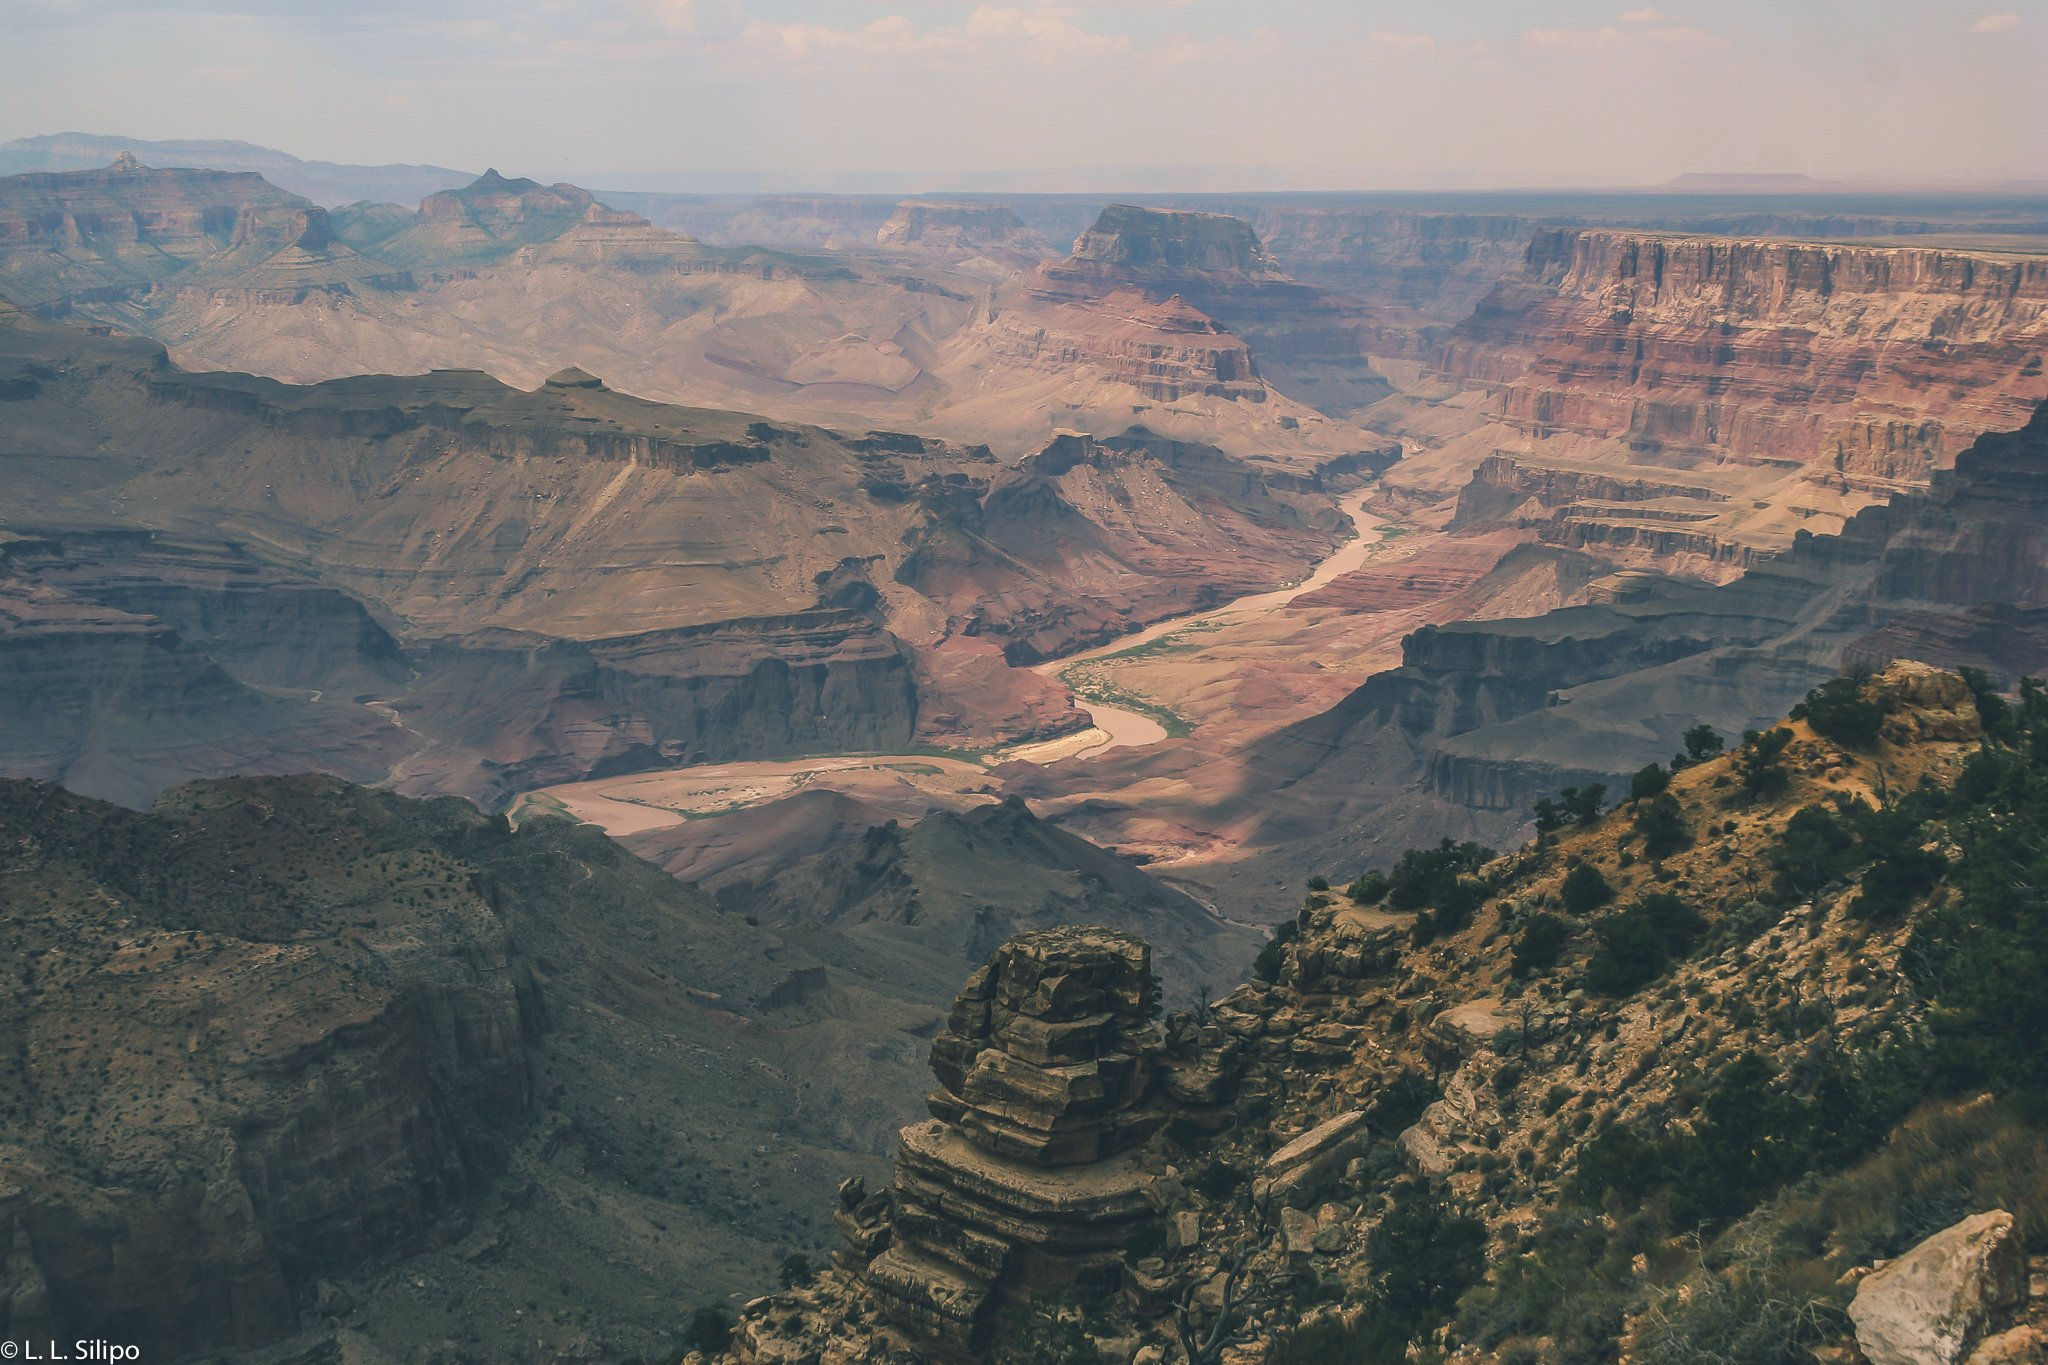 Colorado, Grand, arizona, canyon, colorado plateau, geology, grand canyon, grand canyon national park, landscape, national, national park, nature, outdoors, park, rim, river, rock, scenery, scenic, usa, valley